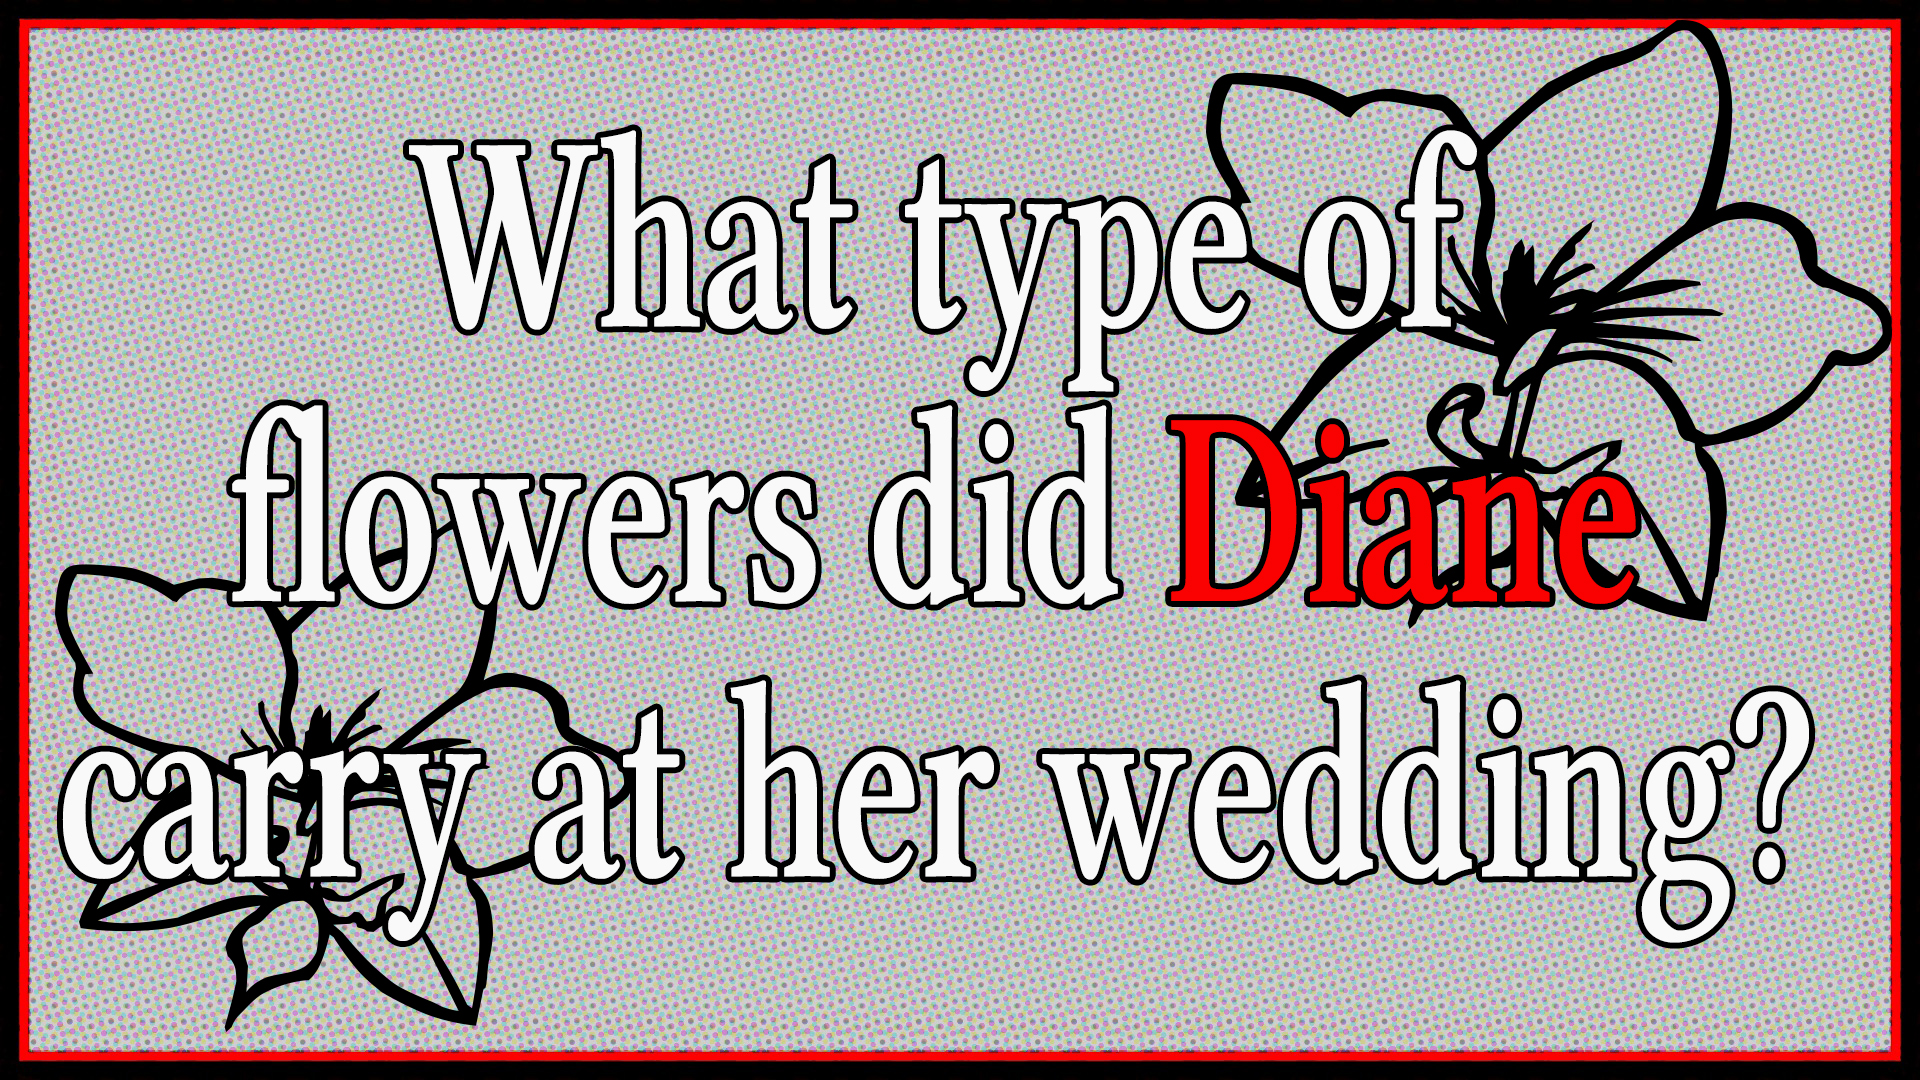 What type of flowers did Diane carry at her wedding?